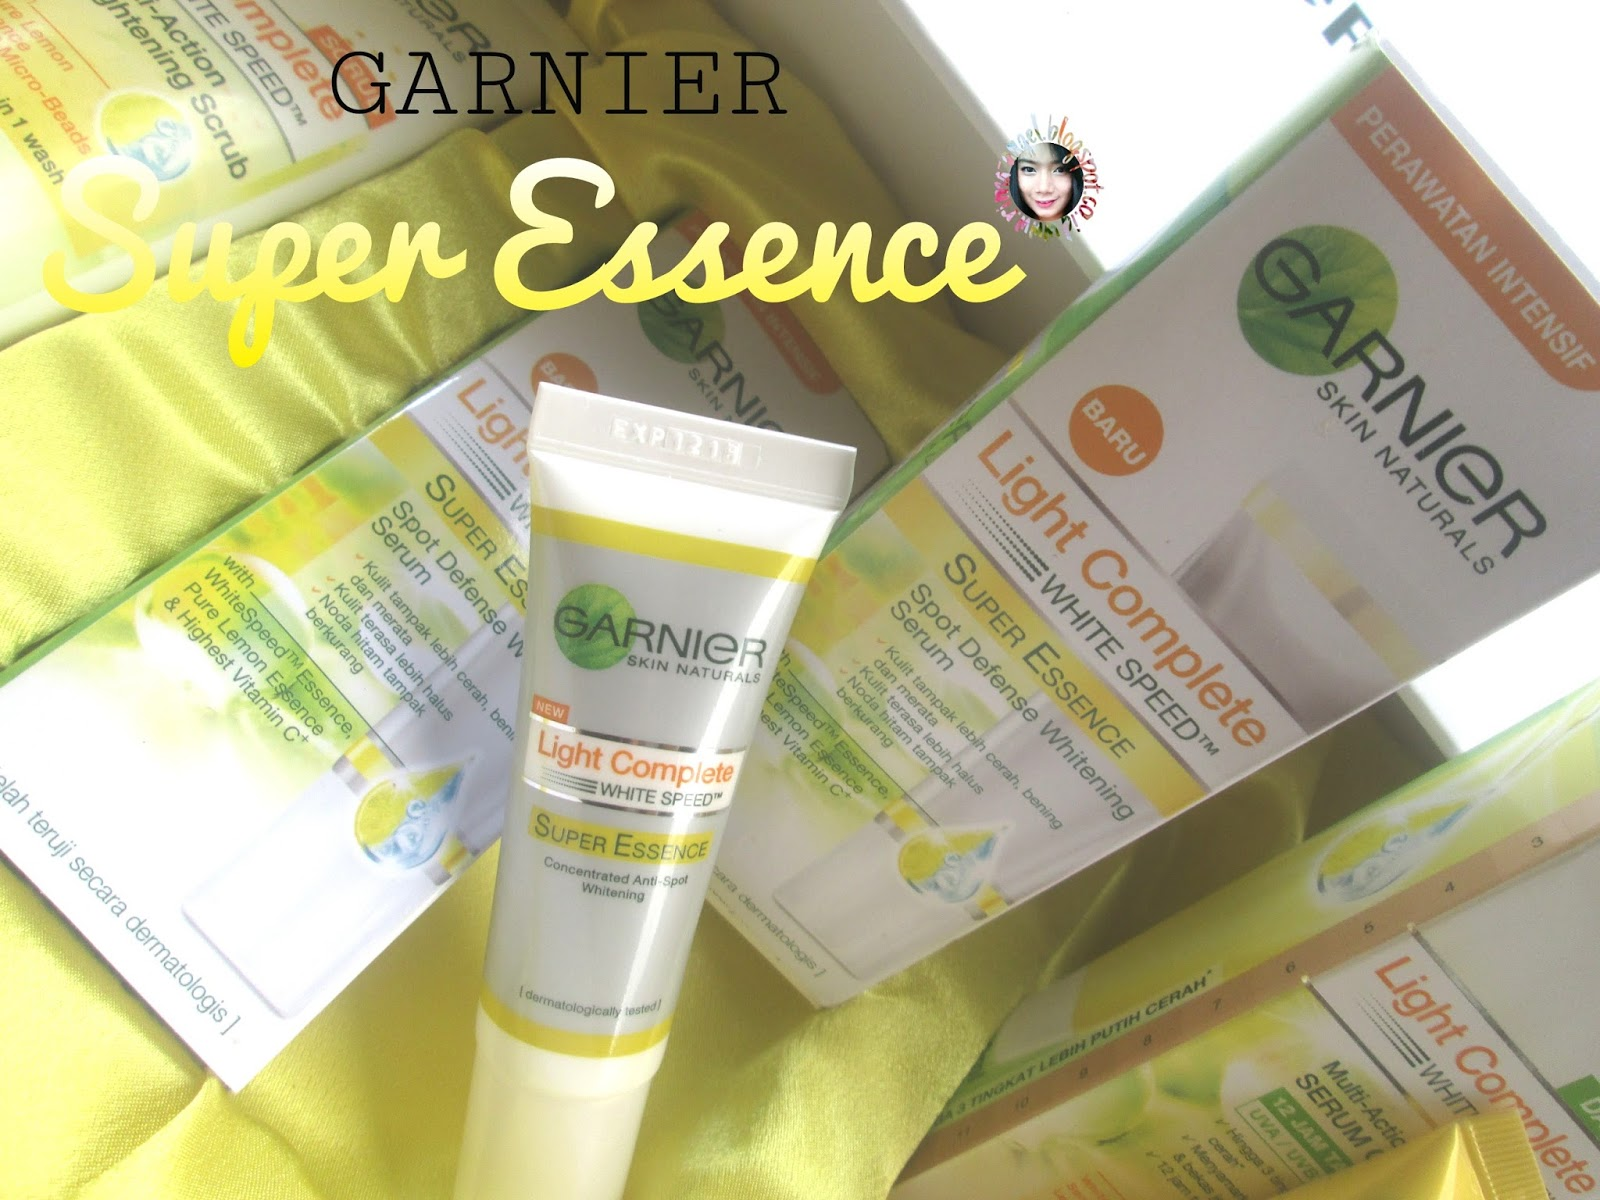 Web Versi Mobile Paket Garnier Light Complete White Speed Review Super Essence